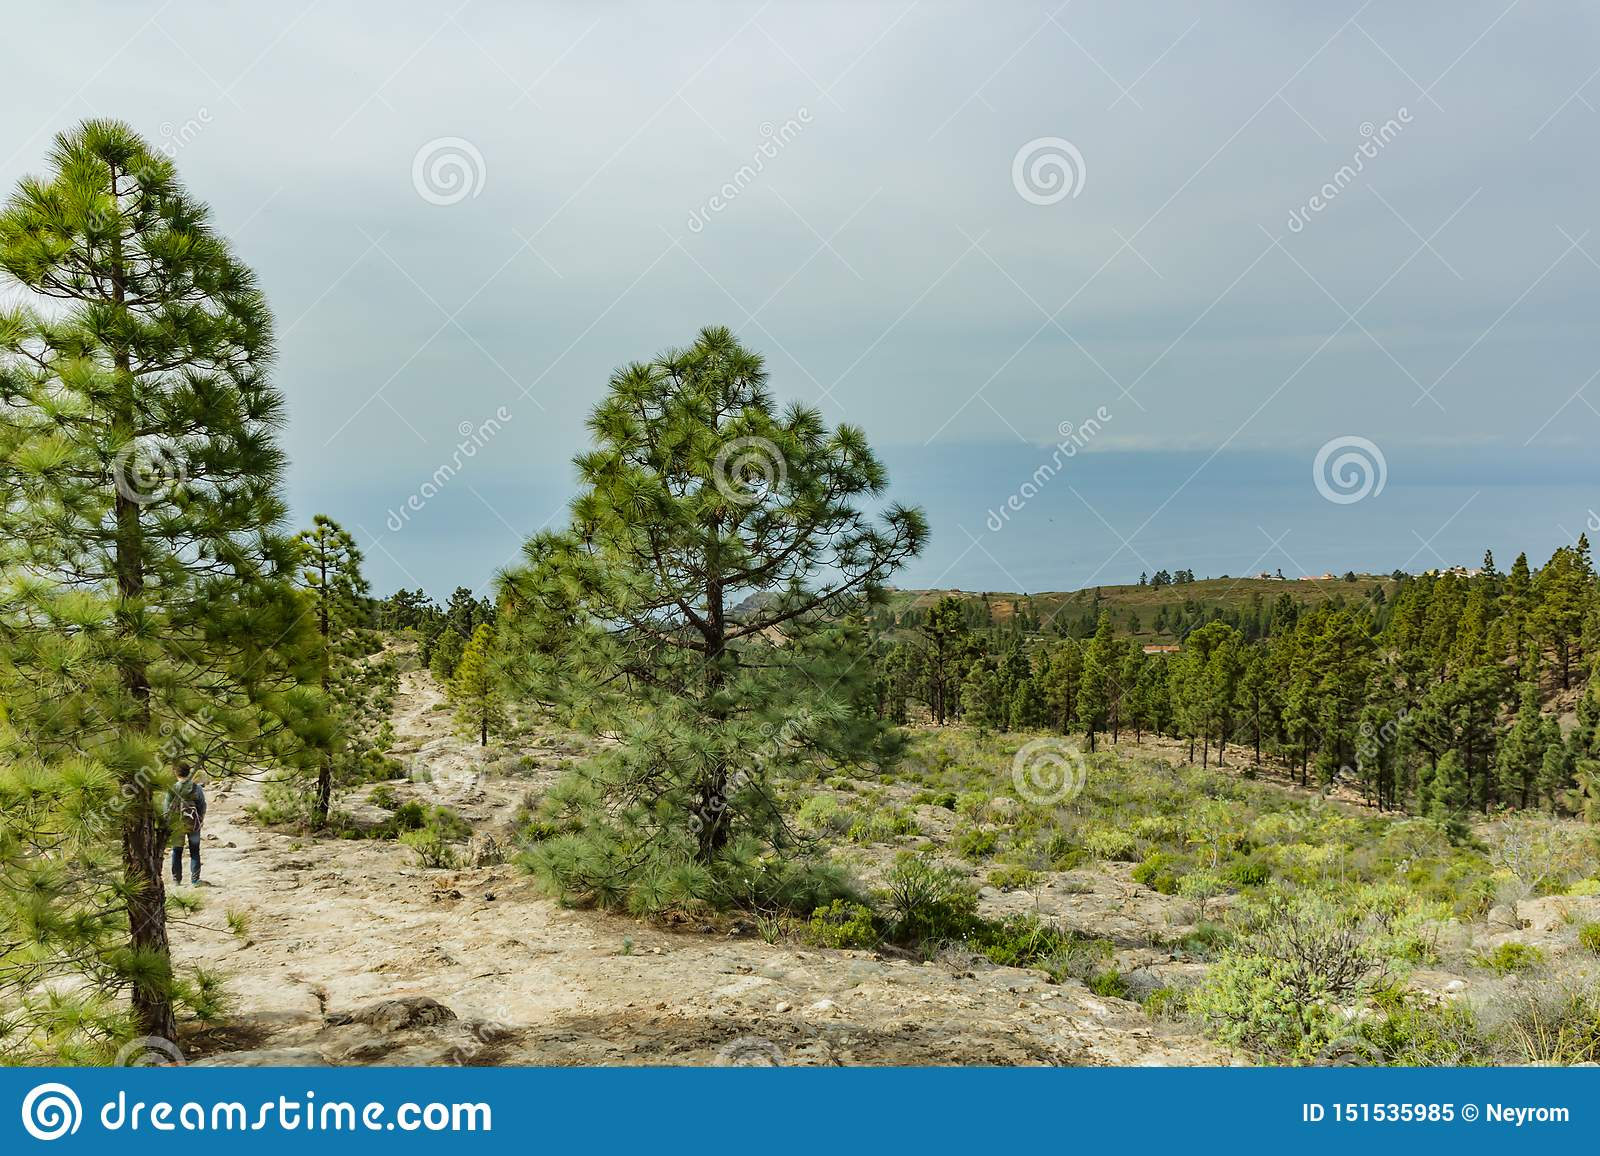 Stony path at upland surrounded by pine trees at sunny day. Clear blue sky and some clouds along the horizon line. Rocky tracking